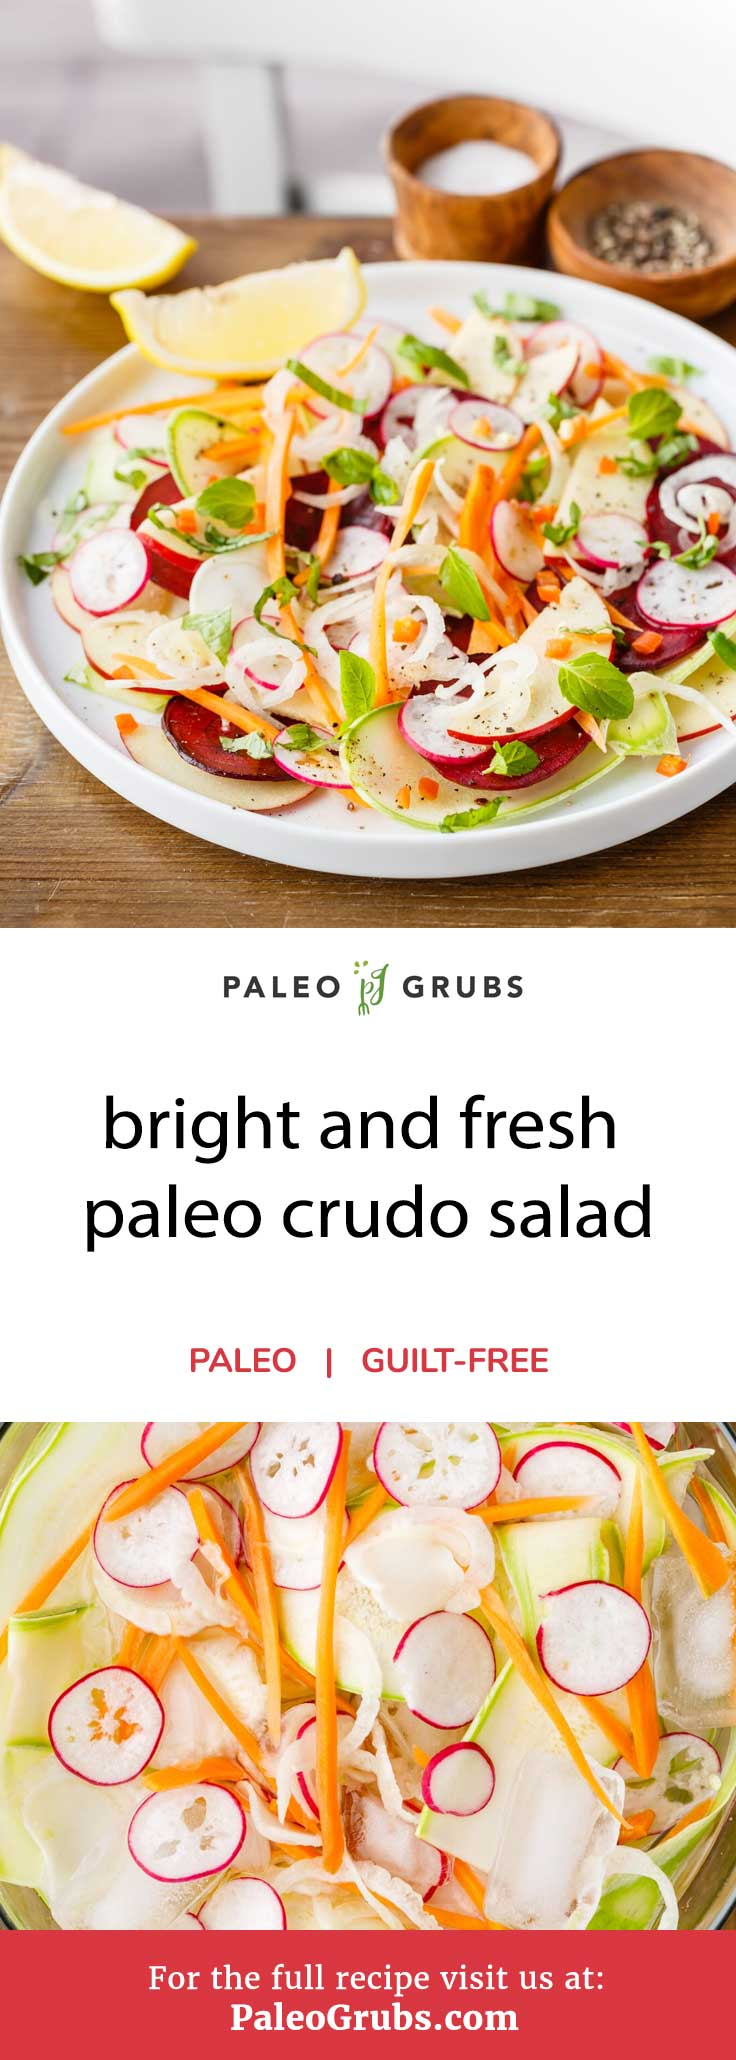 Looking for a bright and colorful salad recipe that's full of healthy fruits and veggies served raw? This crudo salad is just what you're looking for then. It's got everything from carrots to apples all the way on to even beetroot. It makes for a perfect appetizer or a light and healthy snack option, and it's 100% paleo-friendly and vegan-friendly as well.